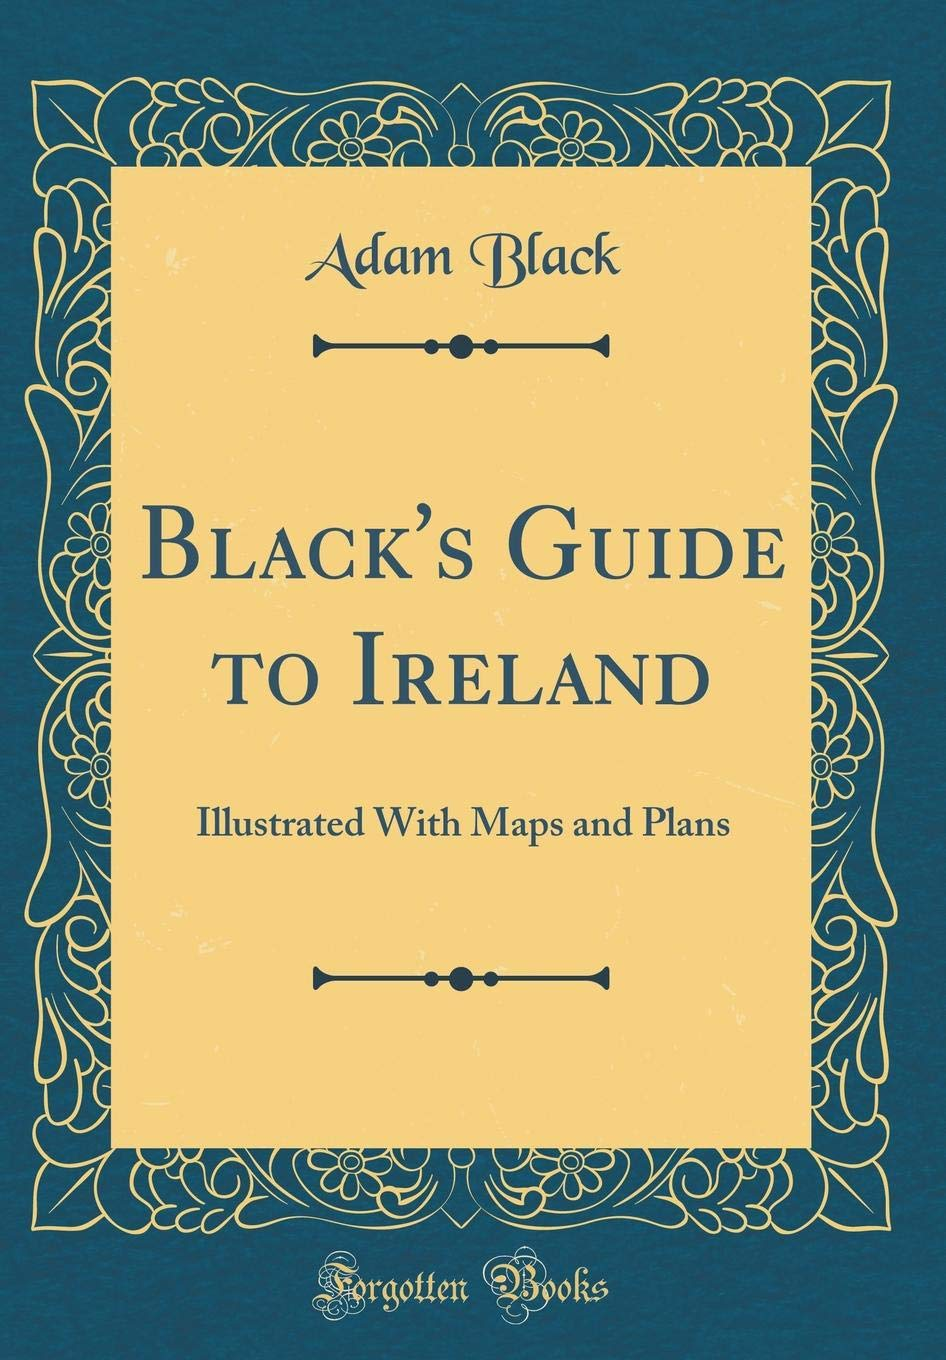 Black's Guide to Ireland: Illustrated with Maps and Plans